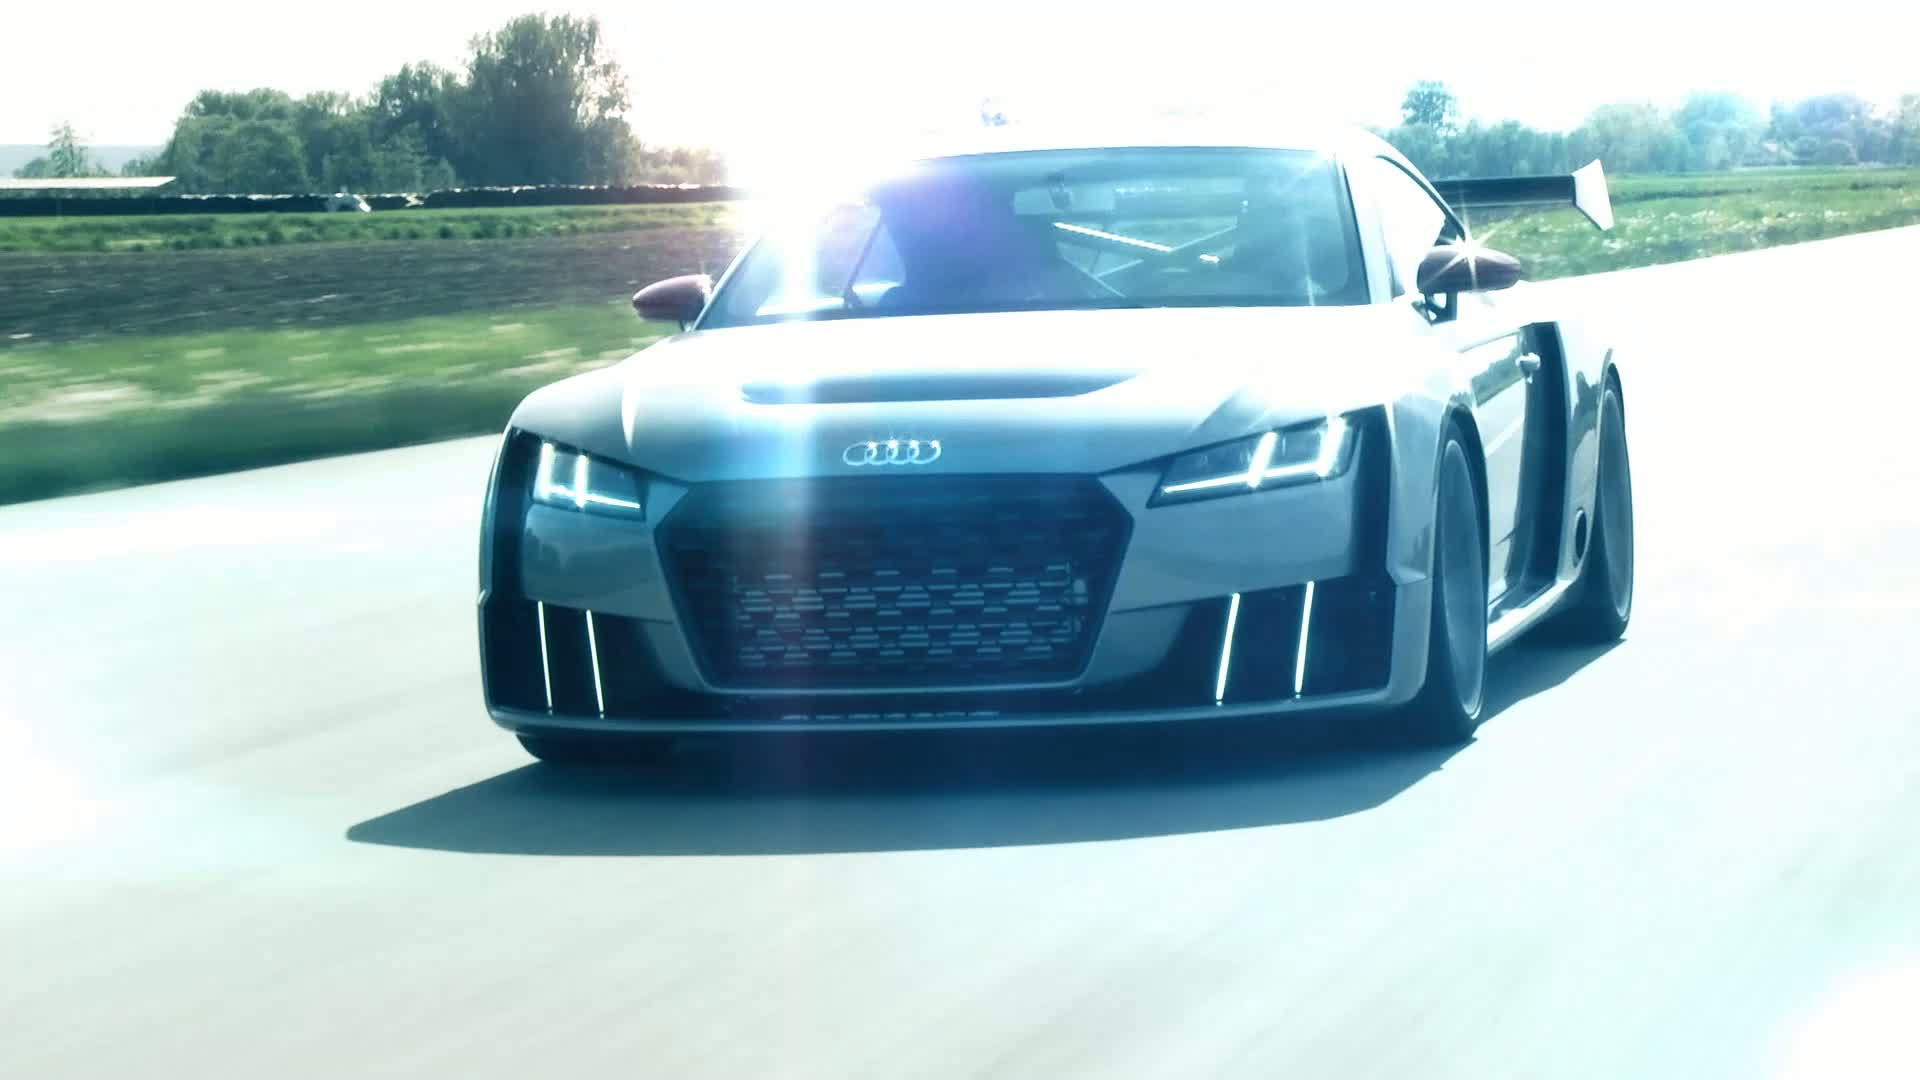 The Audi TT clubsport turbo technology concept car